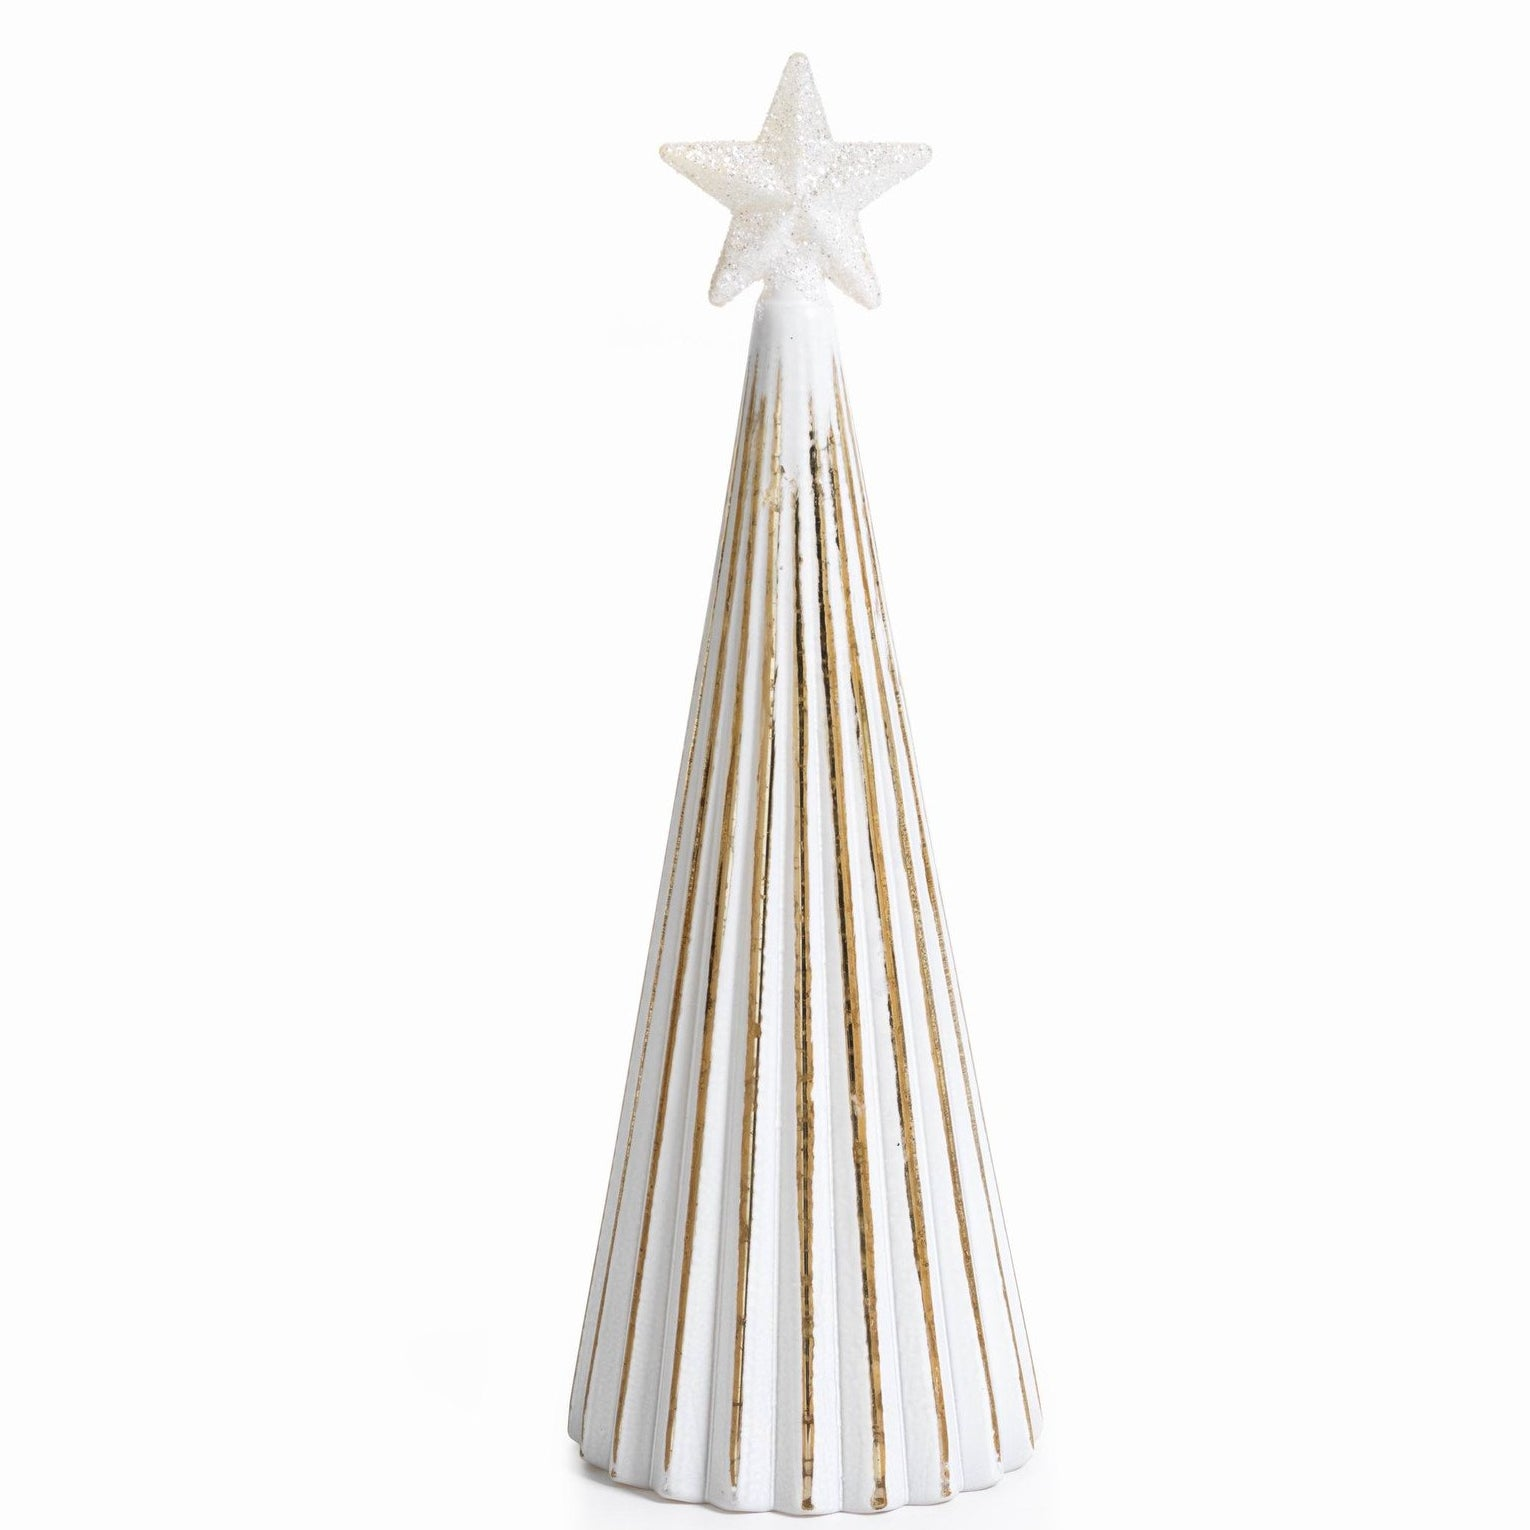 LED Glass Decorative Tree - Gold - Set of 6 - Large / Straight Line - CARLYLE AVENUE - 13